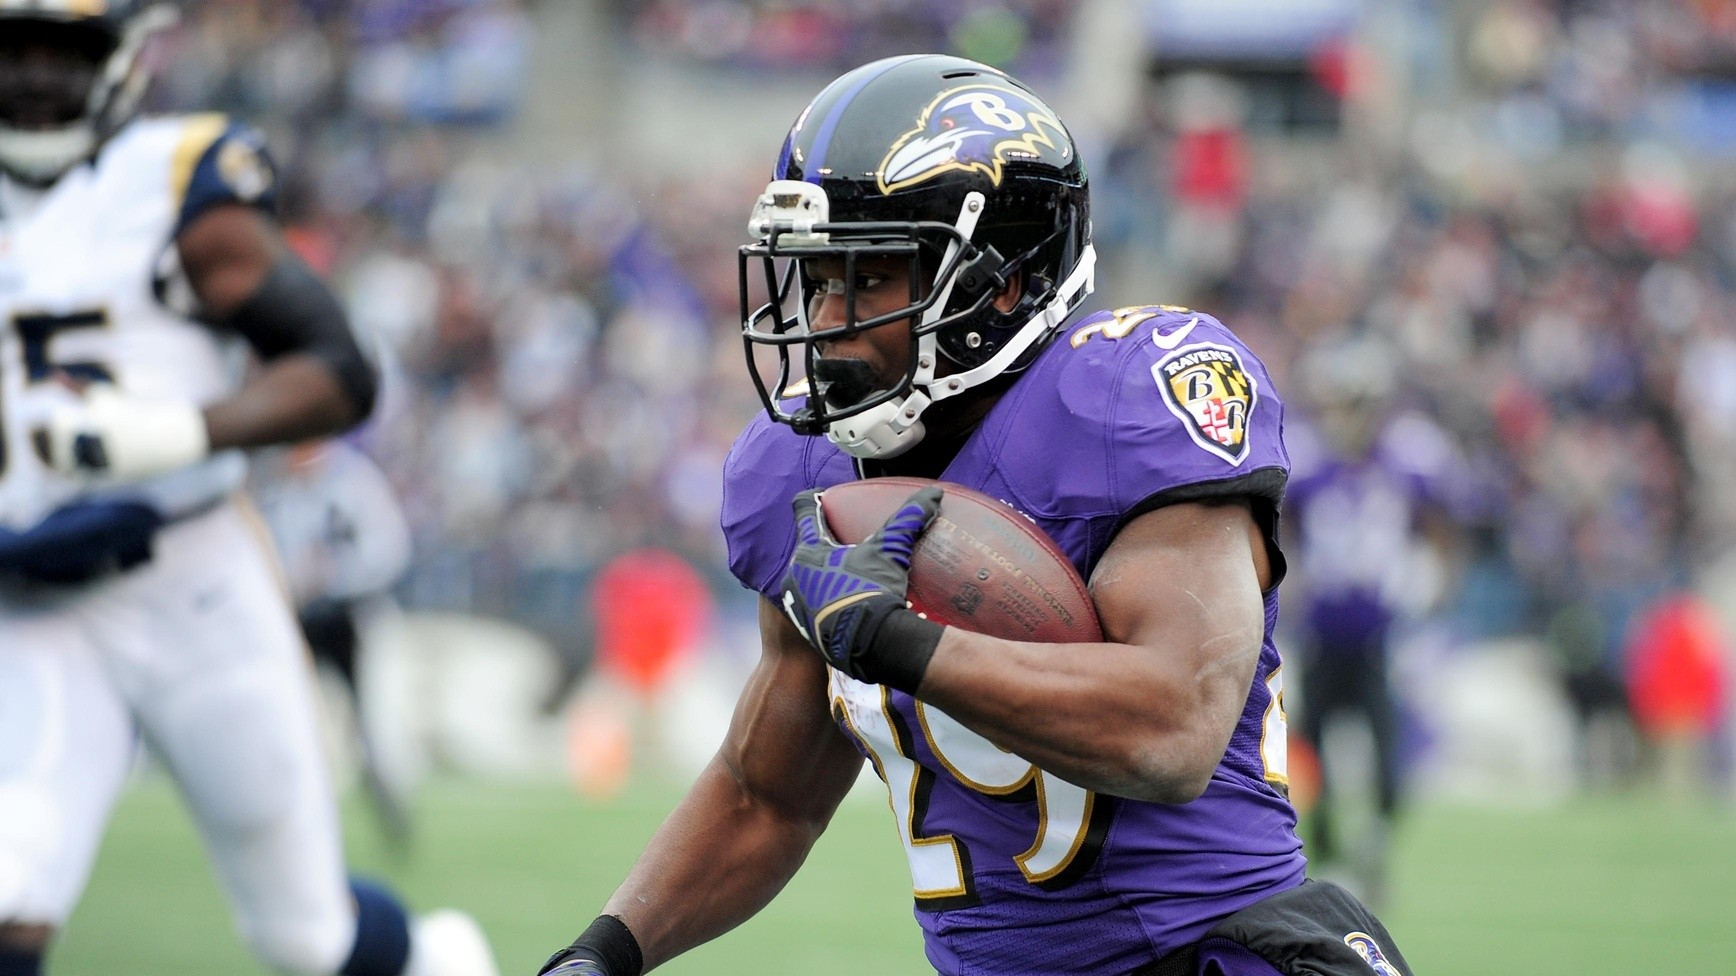 VICE Sports Q&A: Justin Forsett On NFL Players' Flint Water Crisis Relief Efforts